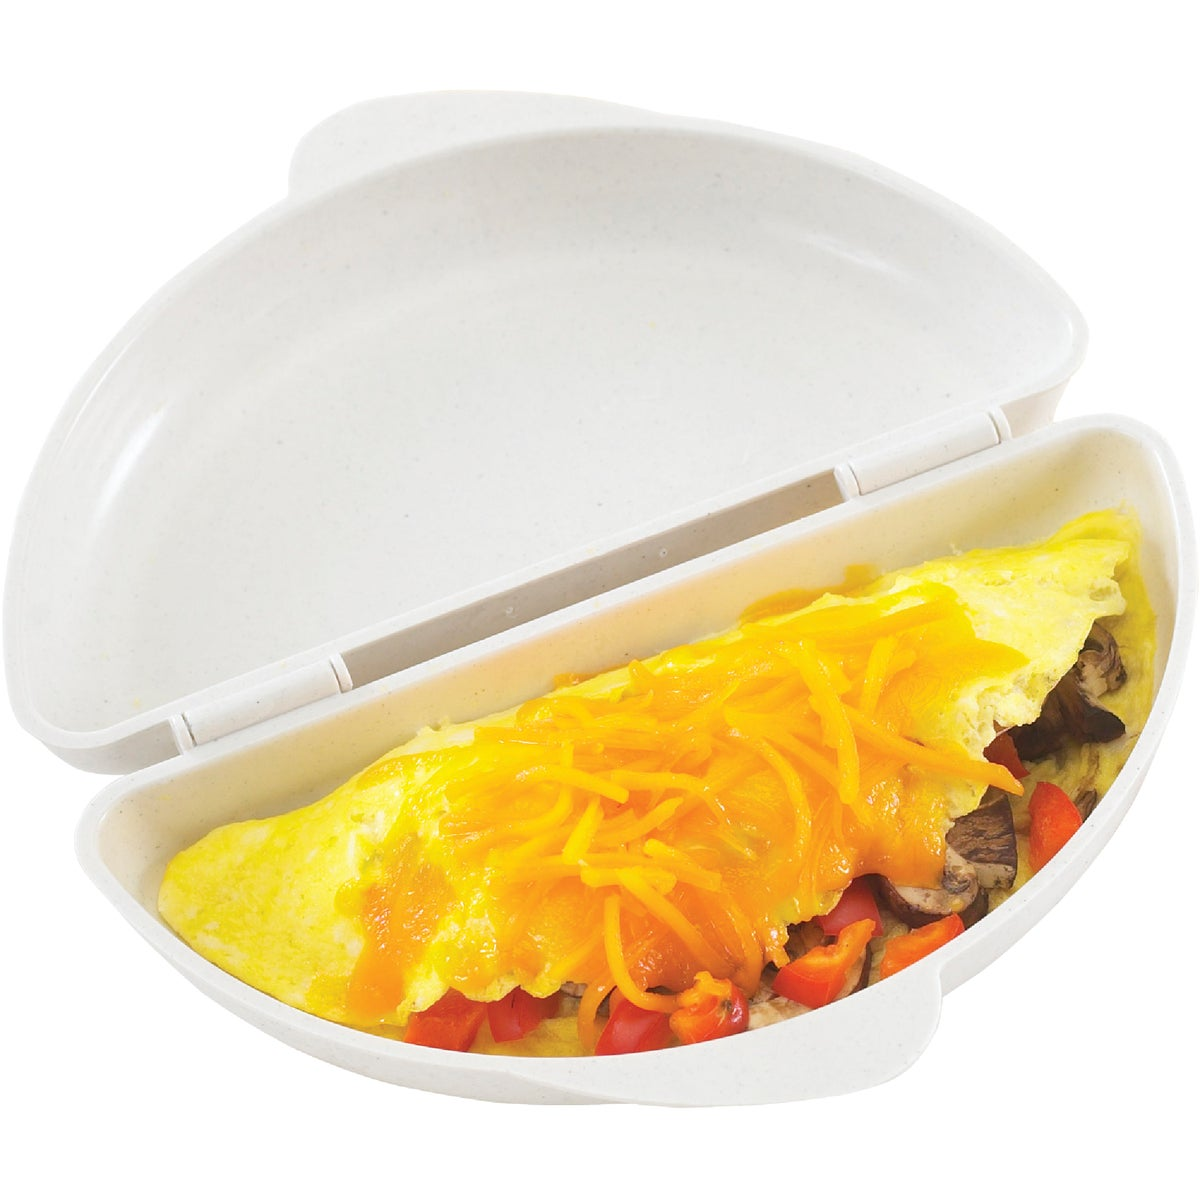 OMELET PAN - 63600 by Nordic Ware/reitenba